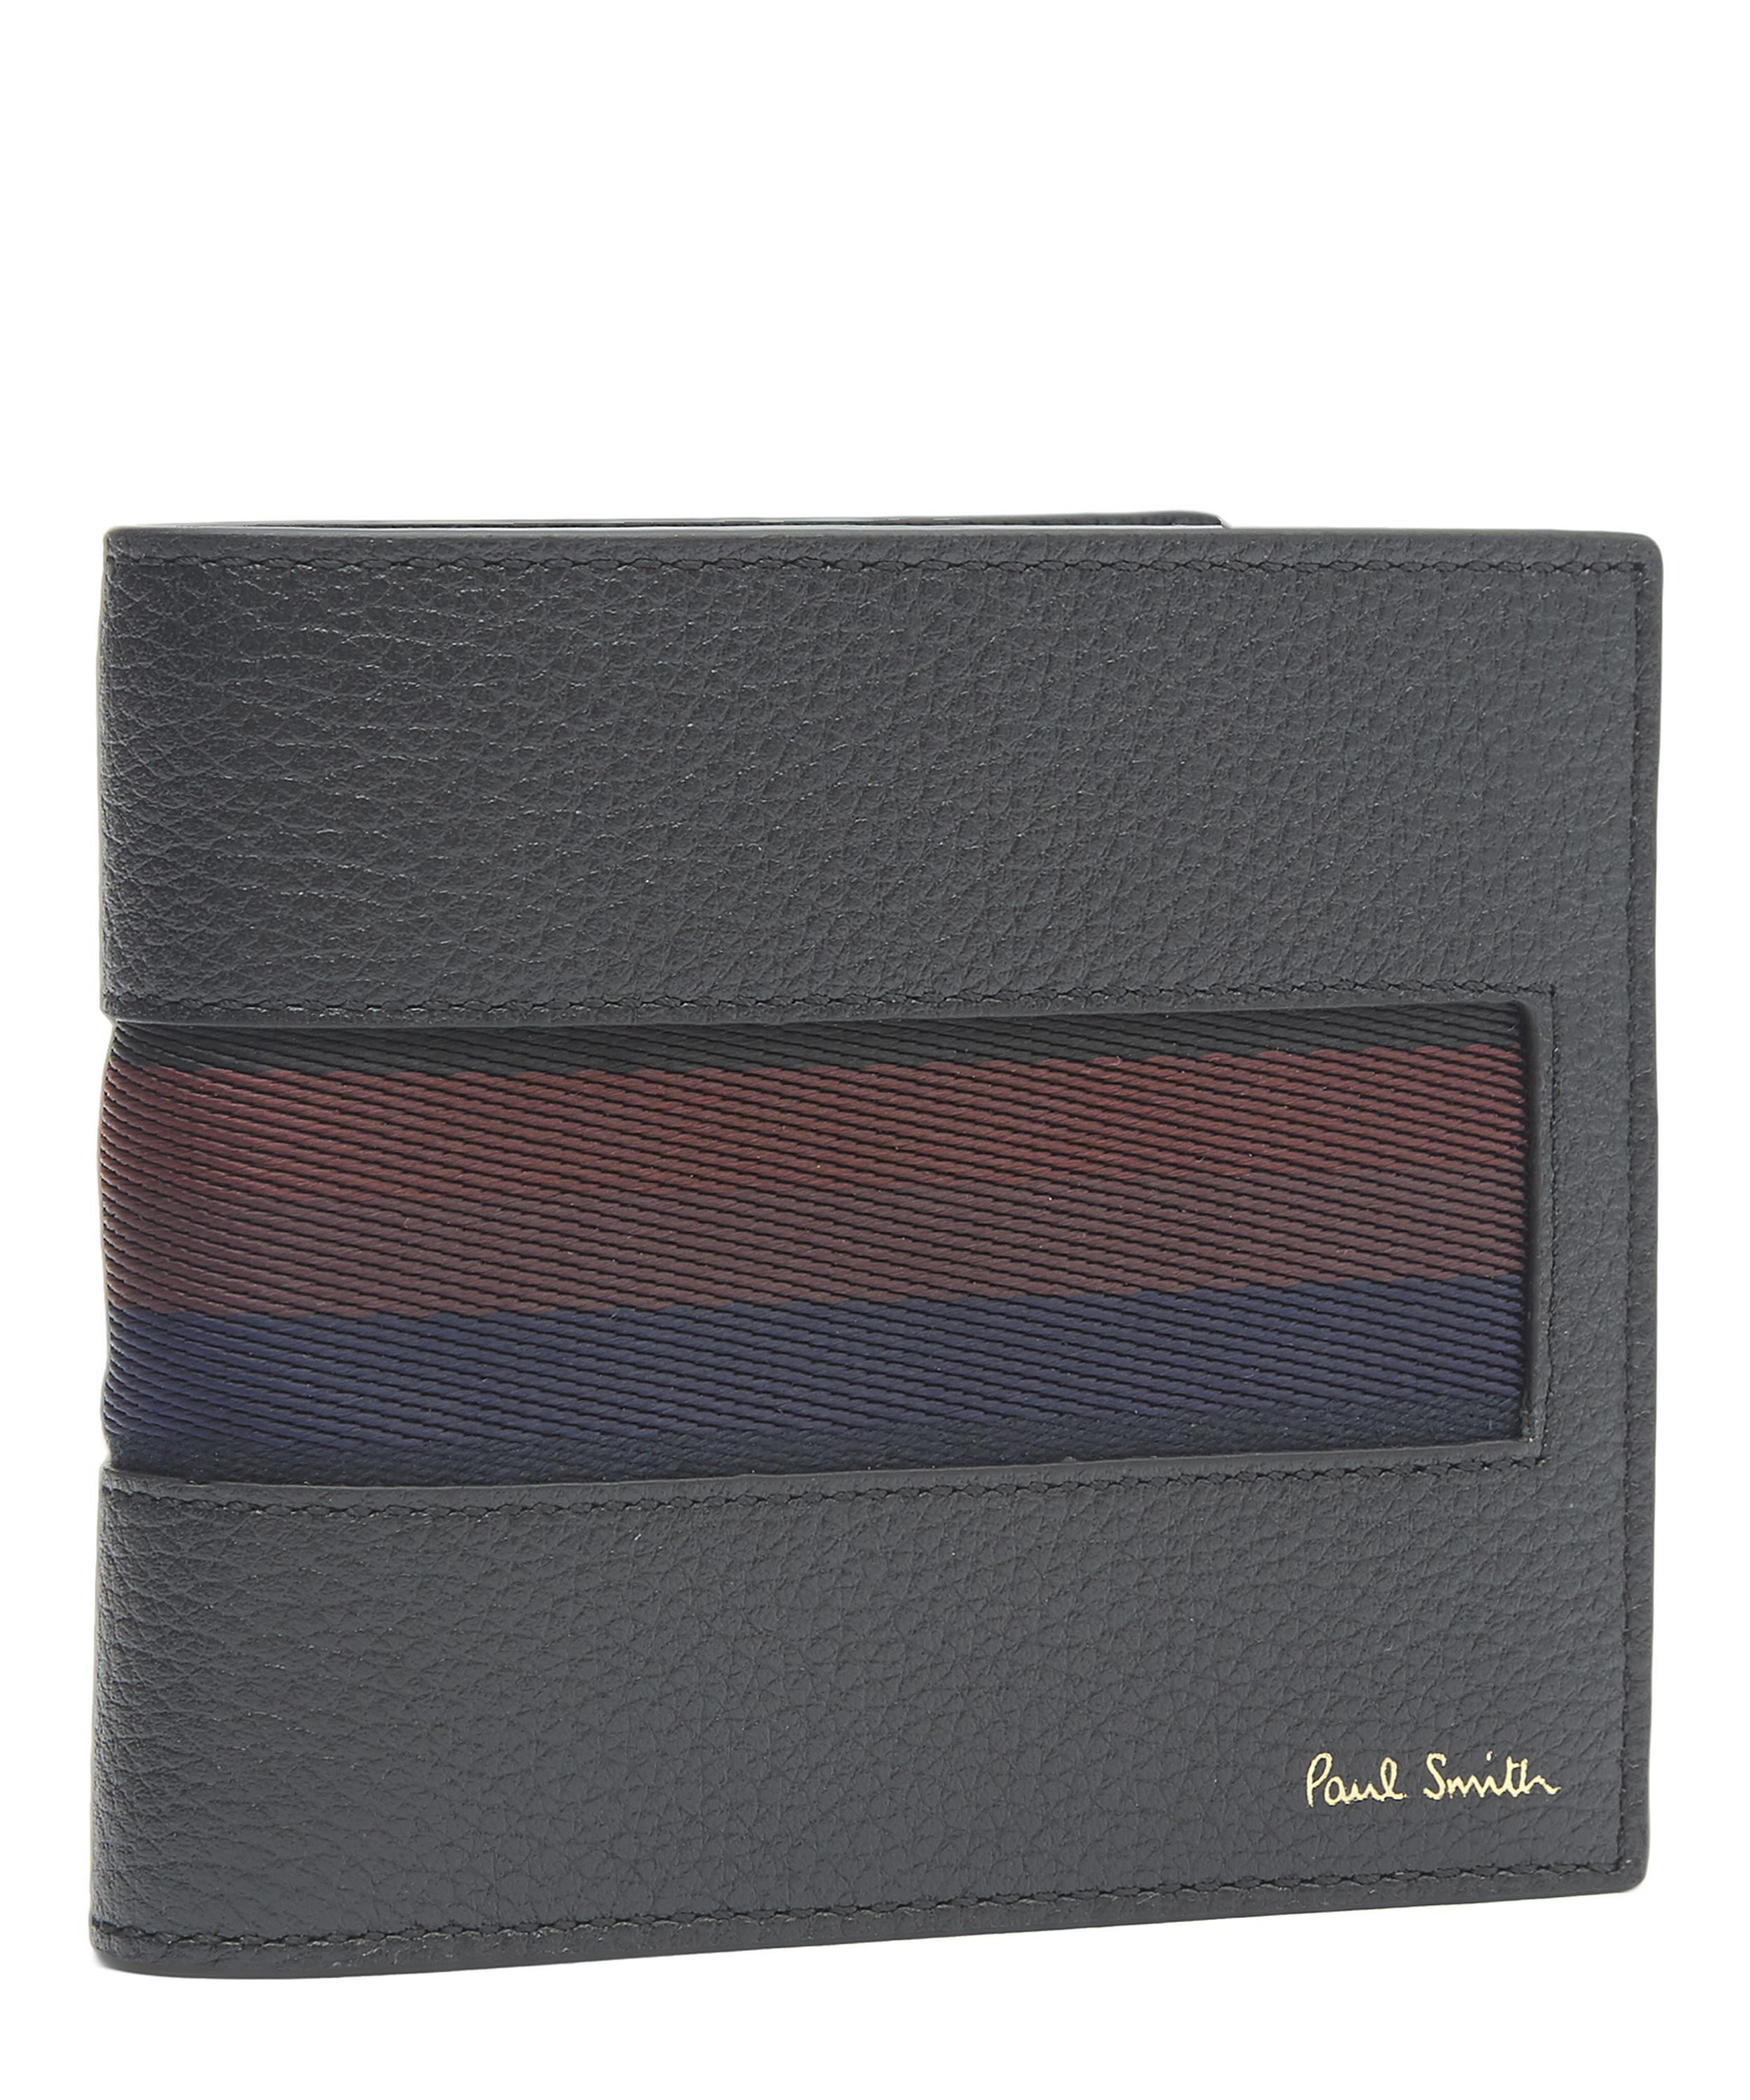 Small Leather Goods - Wallets Paul Smith H25Midj4o9